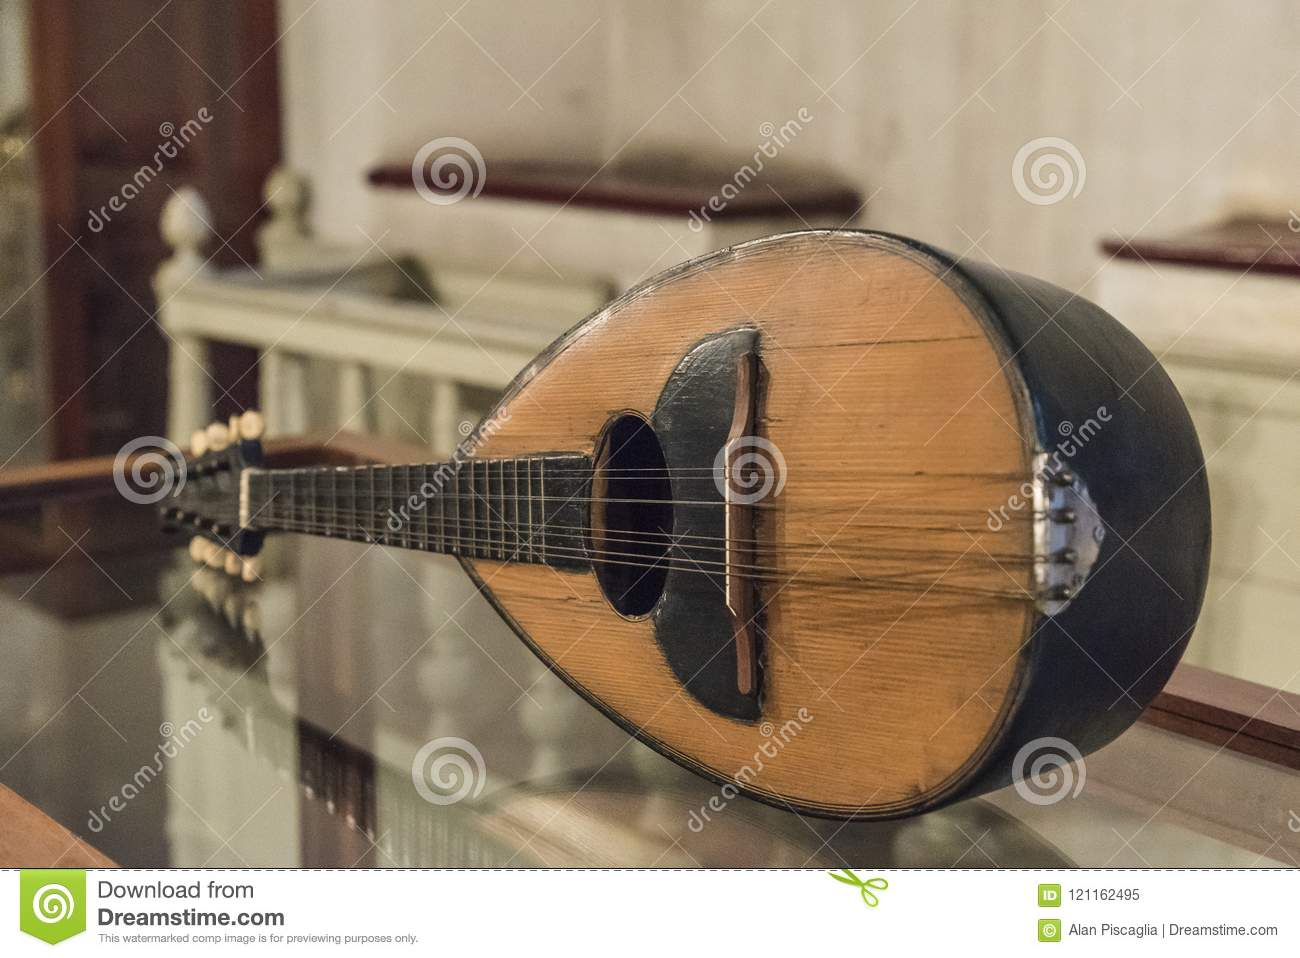 Ancient Mandolin Instrument Stock Image - Image of antique